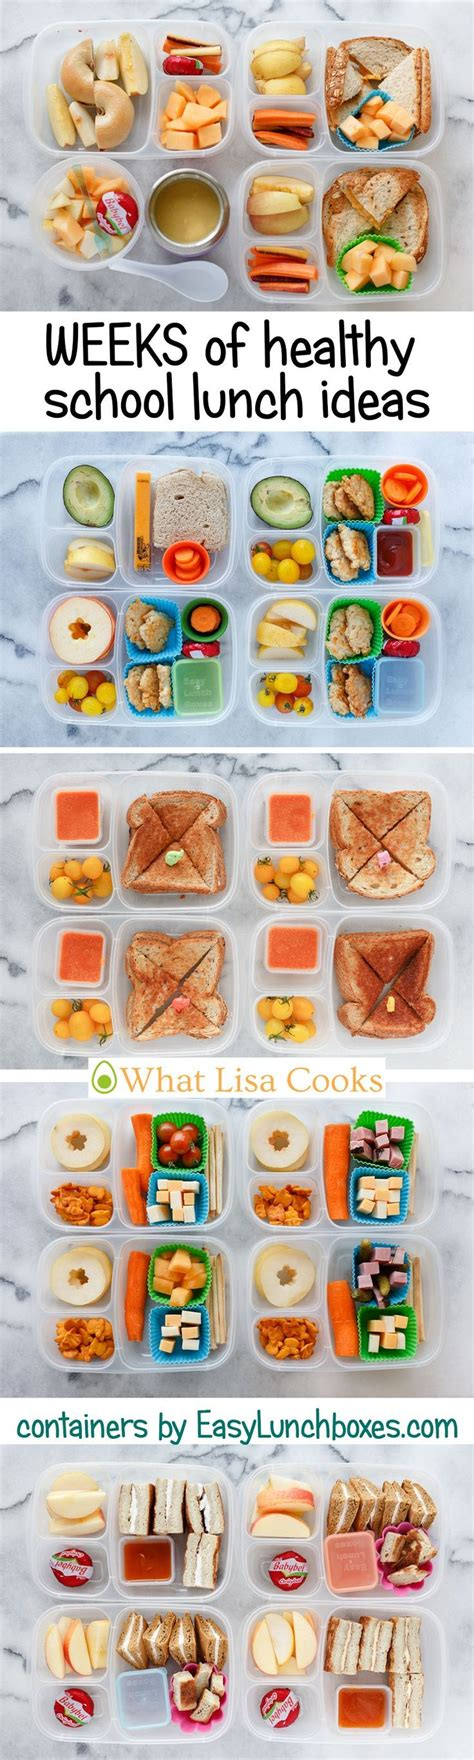 school ideas best 25 healthy school lunches ideas on